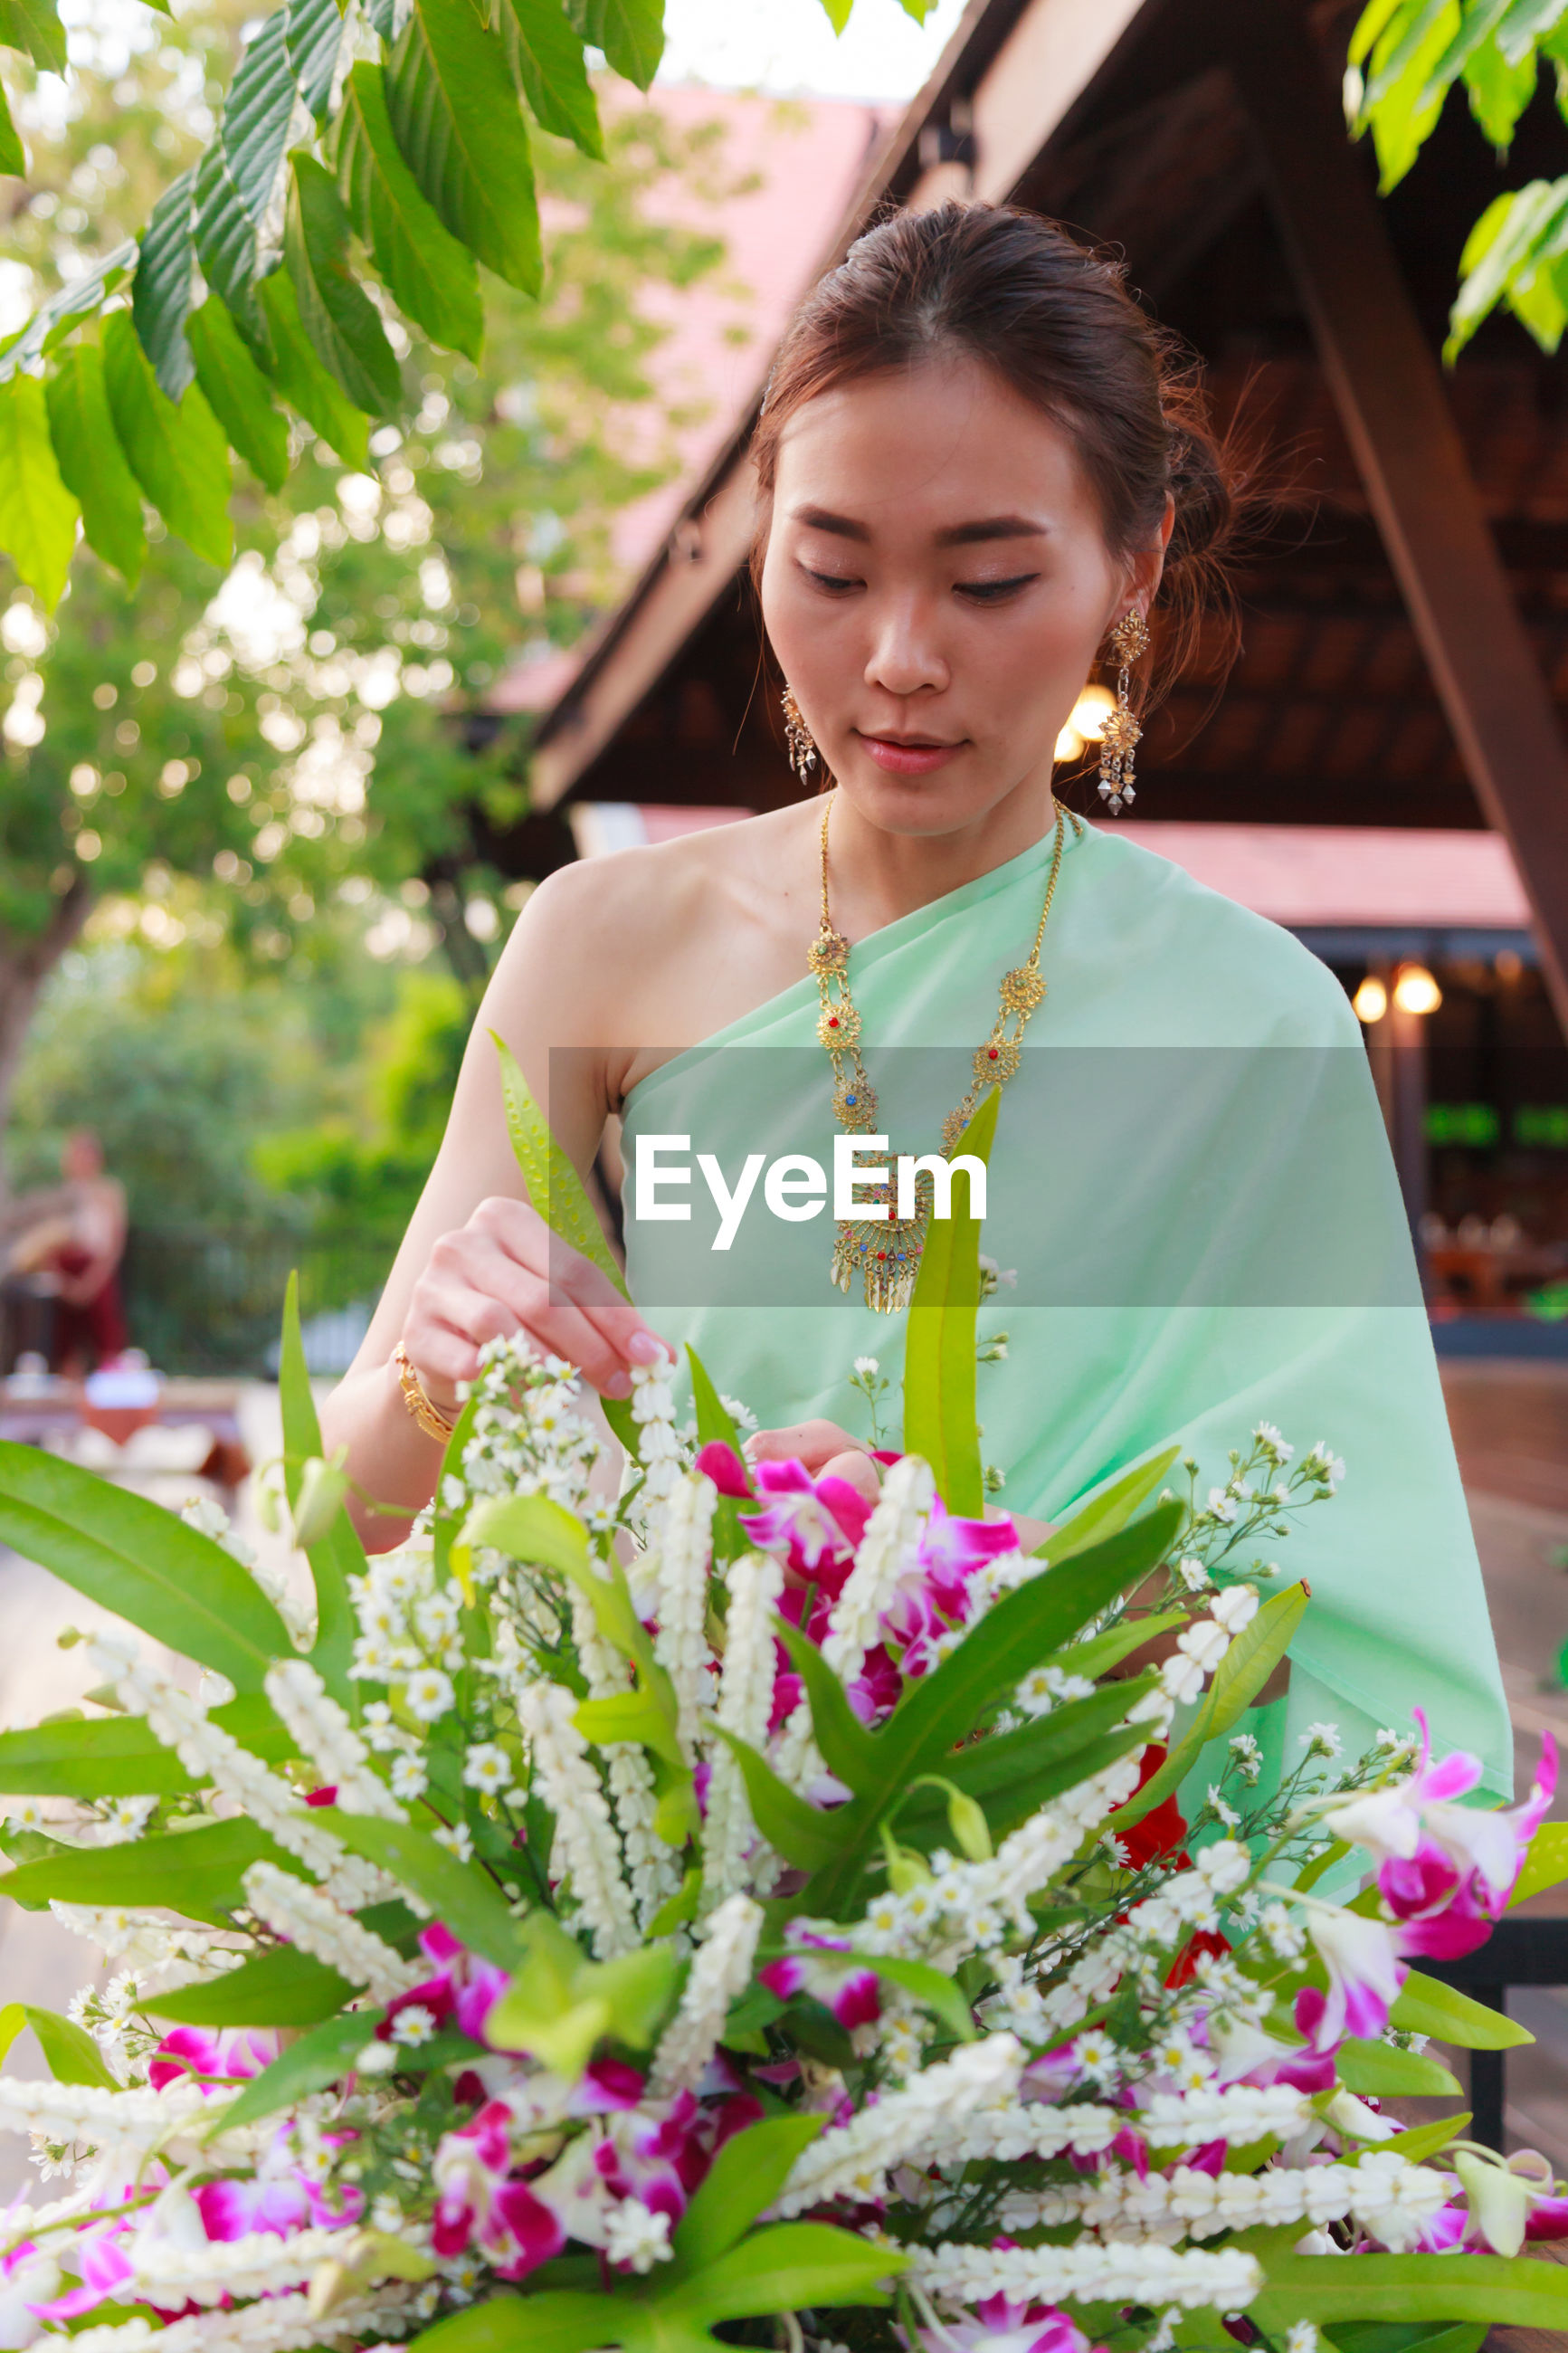 Young woman wearing traditional clothing while arranging flowers outdoors